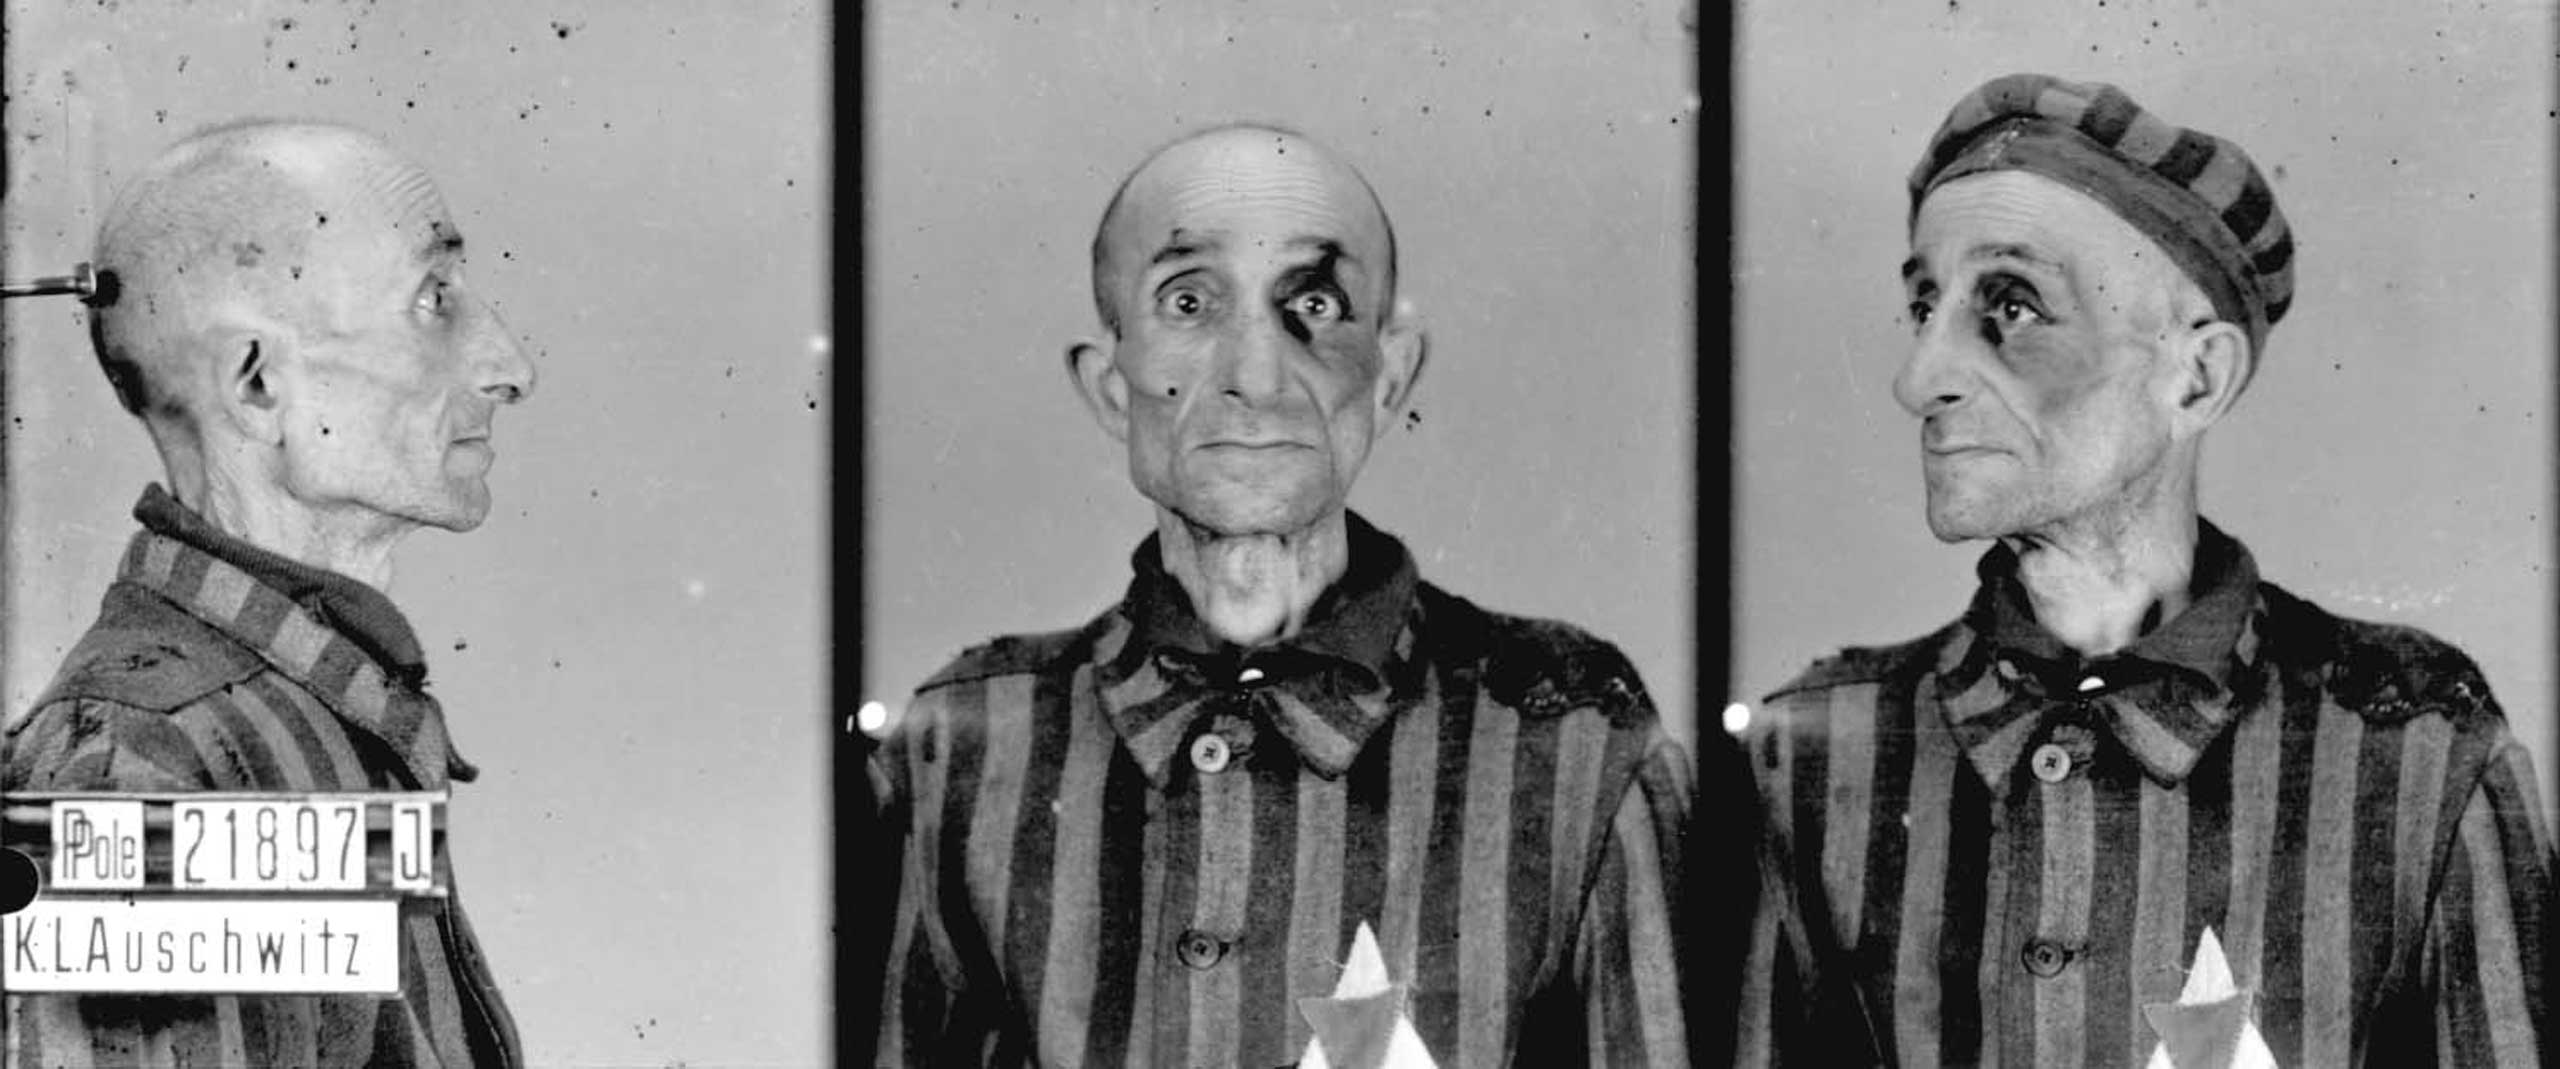 Prisoner no. 21897 at Auschwitz, Poland, c. 1940-45. These inmate ID photos were taken by the camp's Erkennungsdienst, the photographic identification unit. Most of the photos were taken by Wilhelm Brasse, an inmate of German-Polish decent with photographic training. Brasse has estimated that he took about 40,000 to 50,000  identity pictures  before being forcibly moved to another concentration camp in Austria.